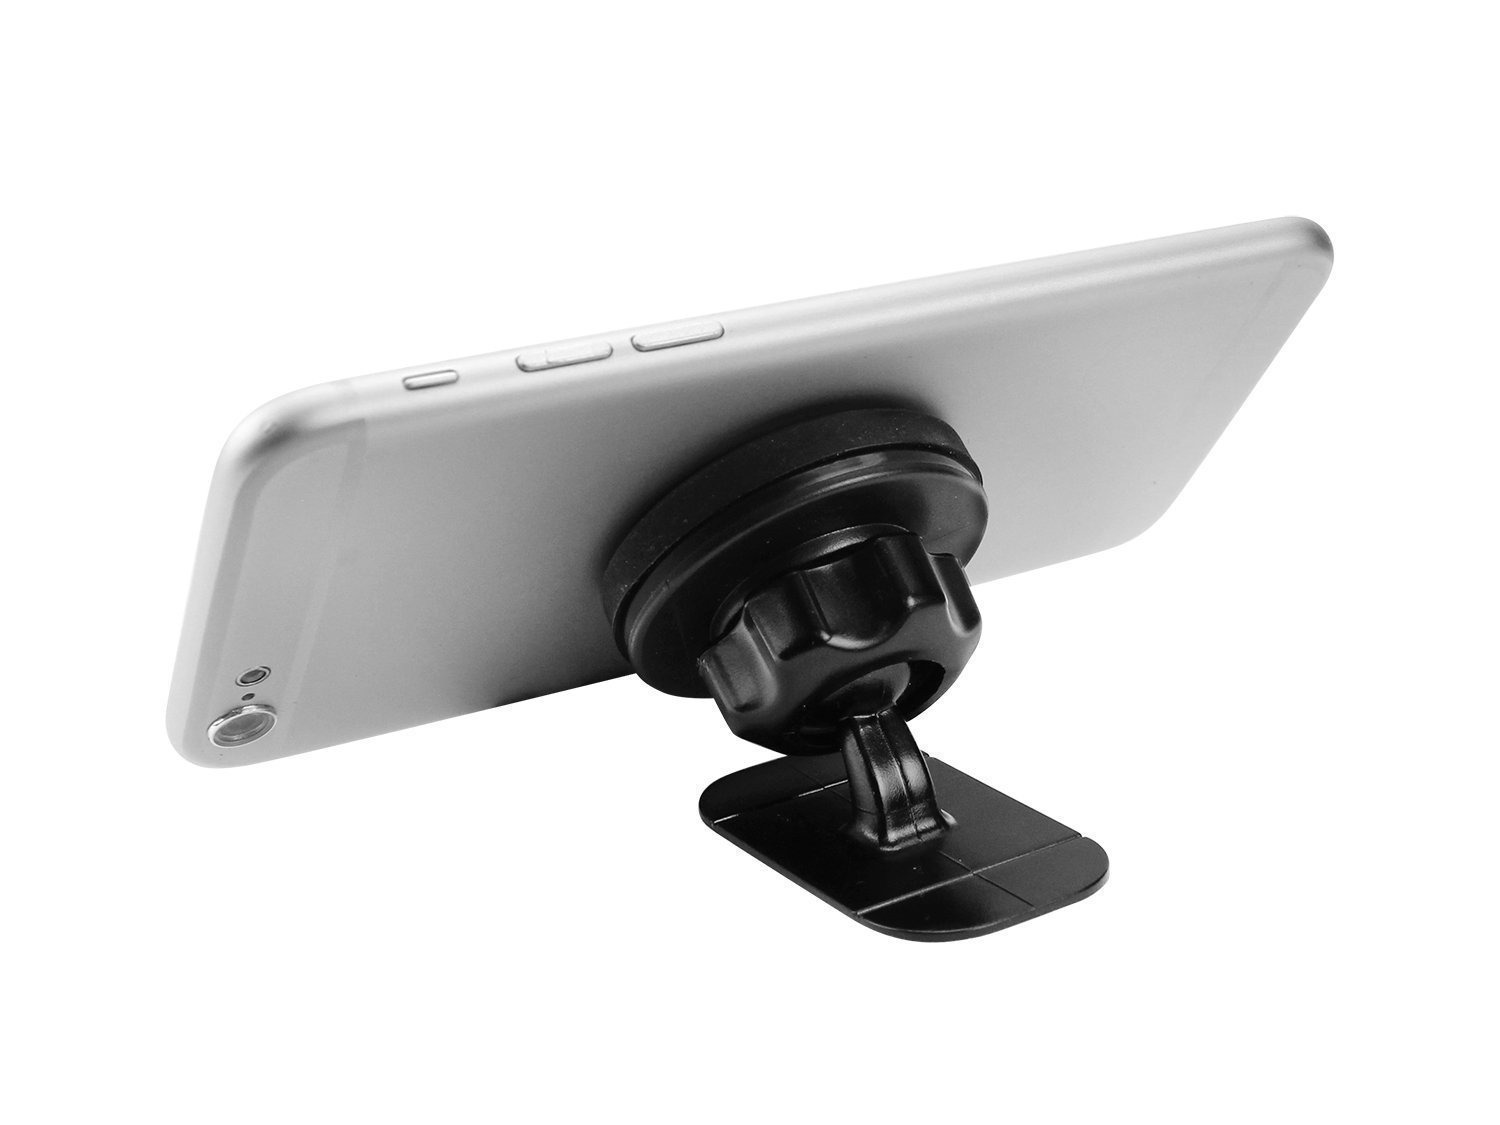 Magna Mount Smart Cell Phone Car Mount Magnetic Dashboard Holder compatible for iPhone, Android, Samsung, GPS, iPad, Tablets